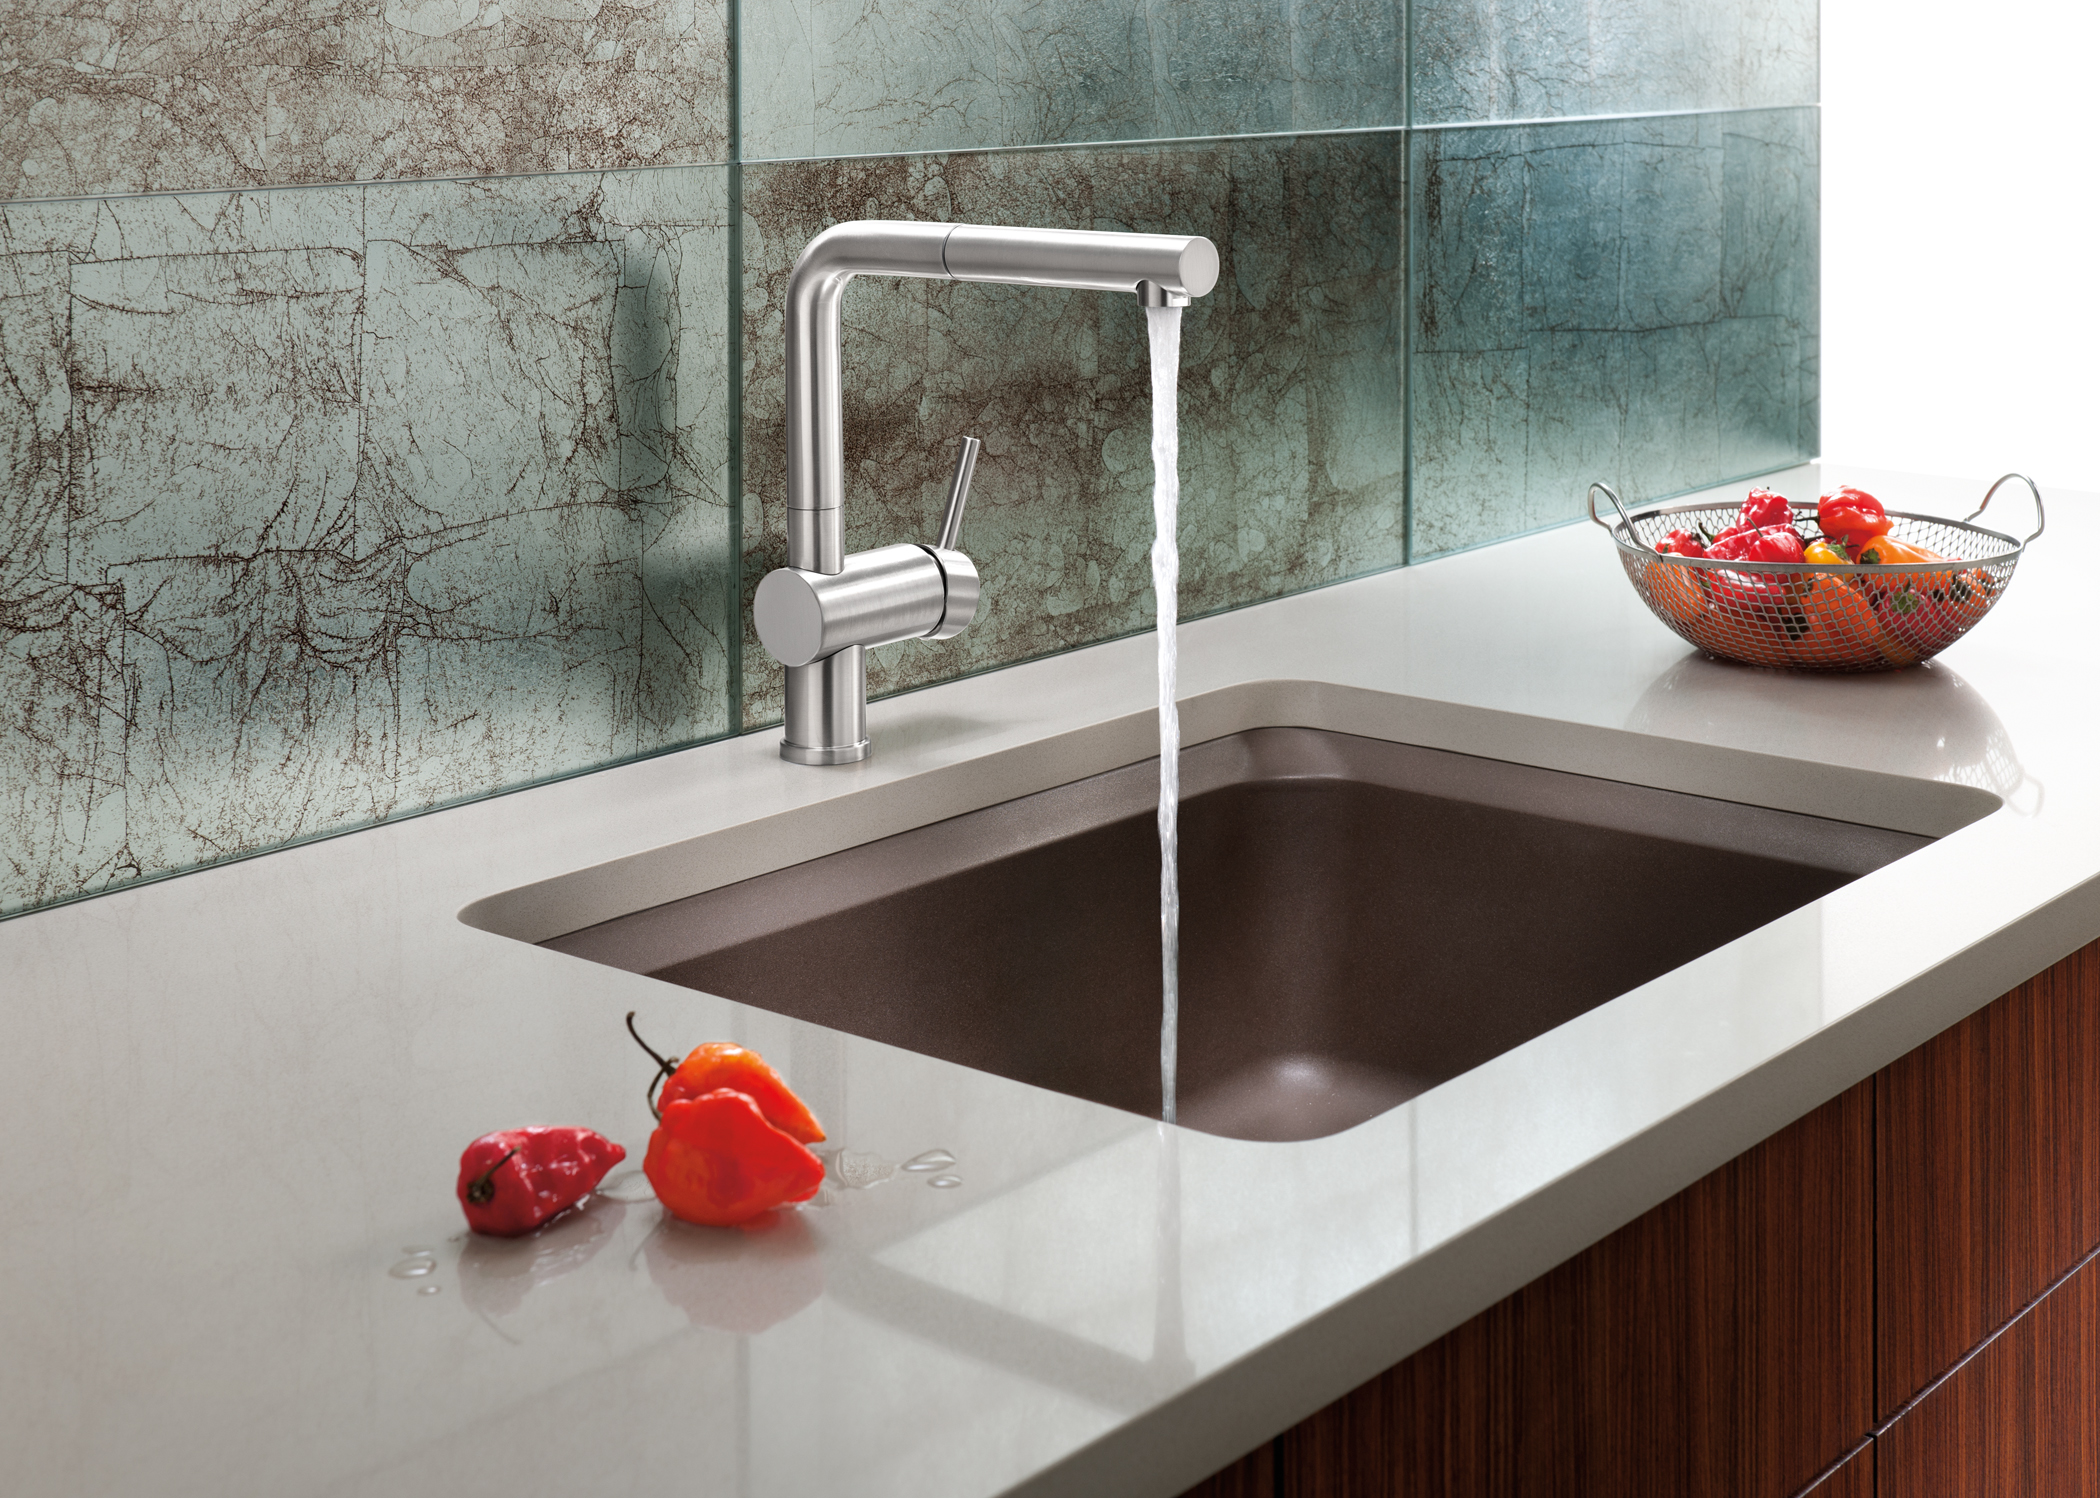 The New Blanco Silgranit Ii Vision Designer Kitchen Sink Offers Luxurious Usability At Great